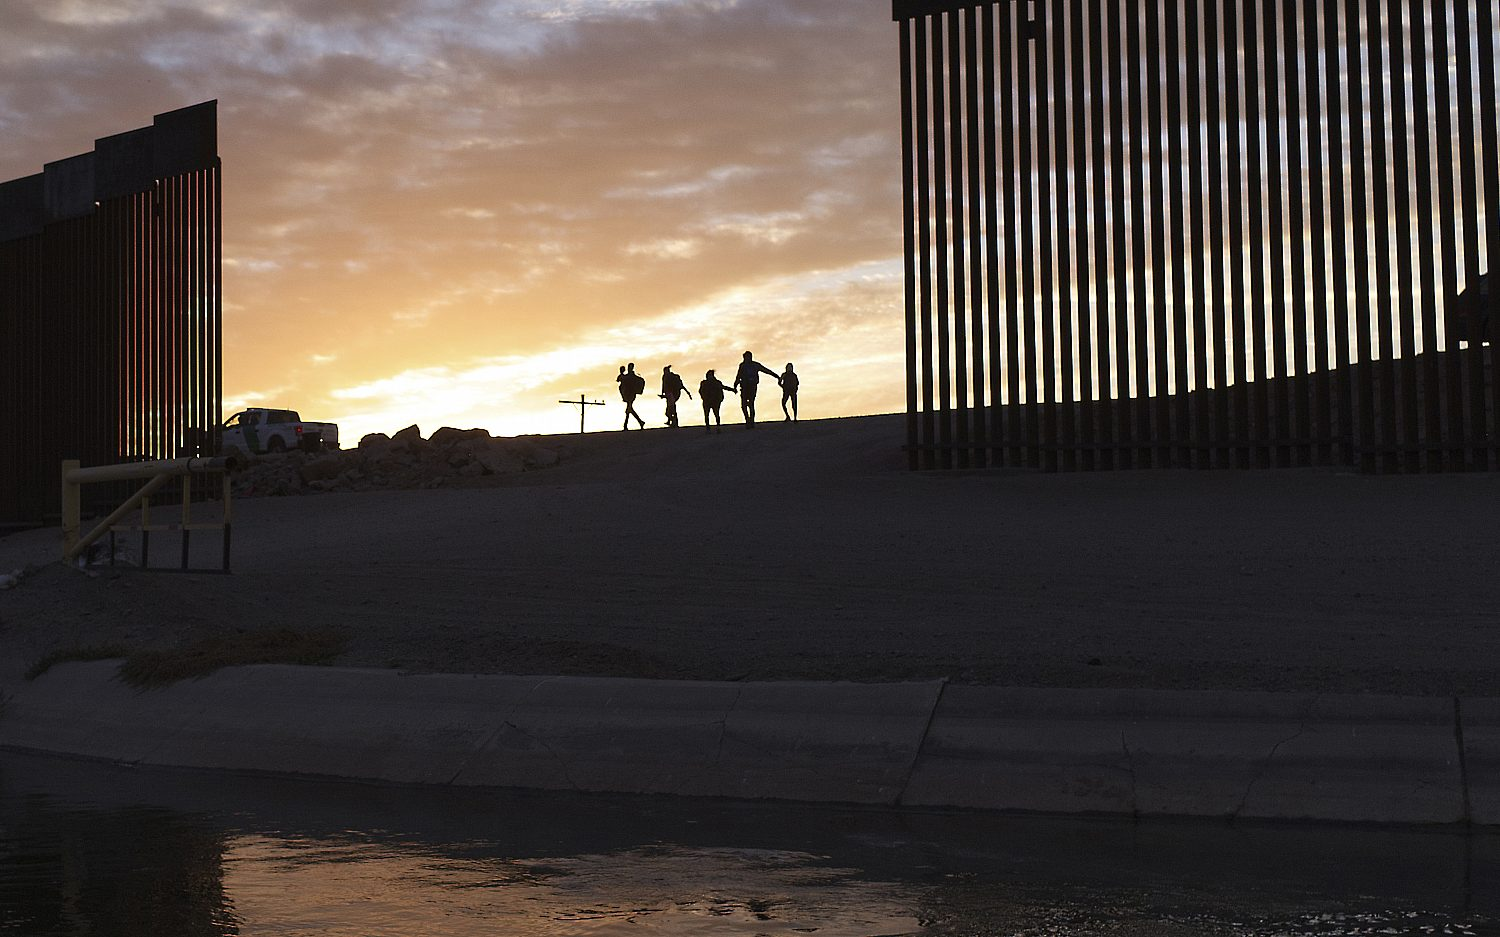 An immigration policy retrospective